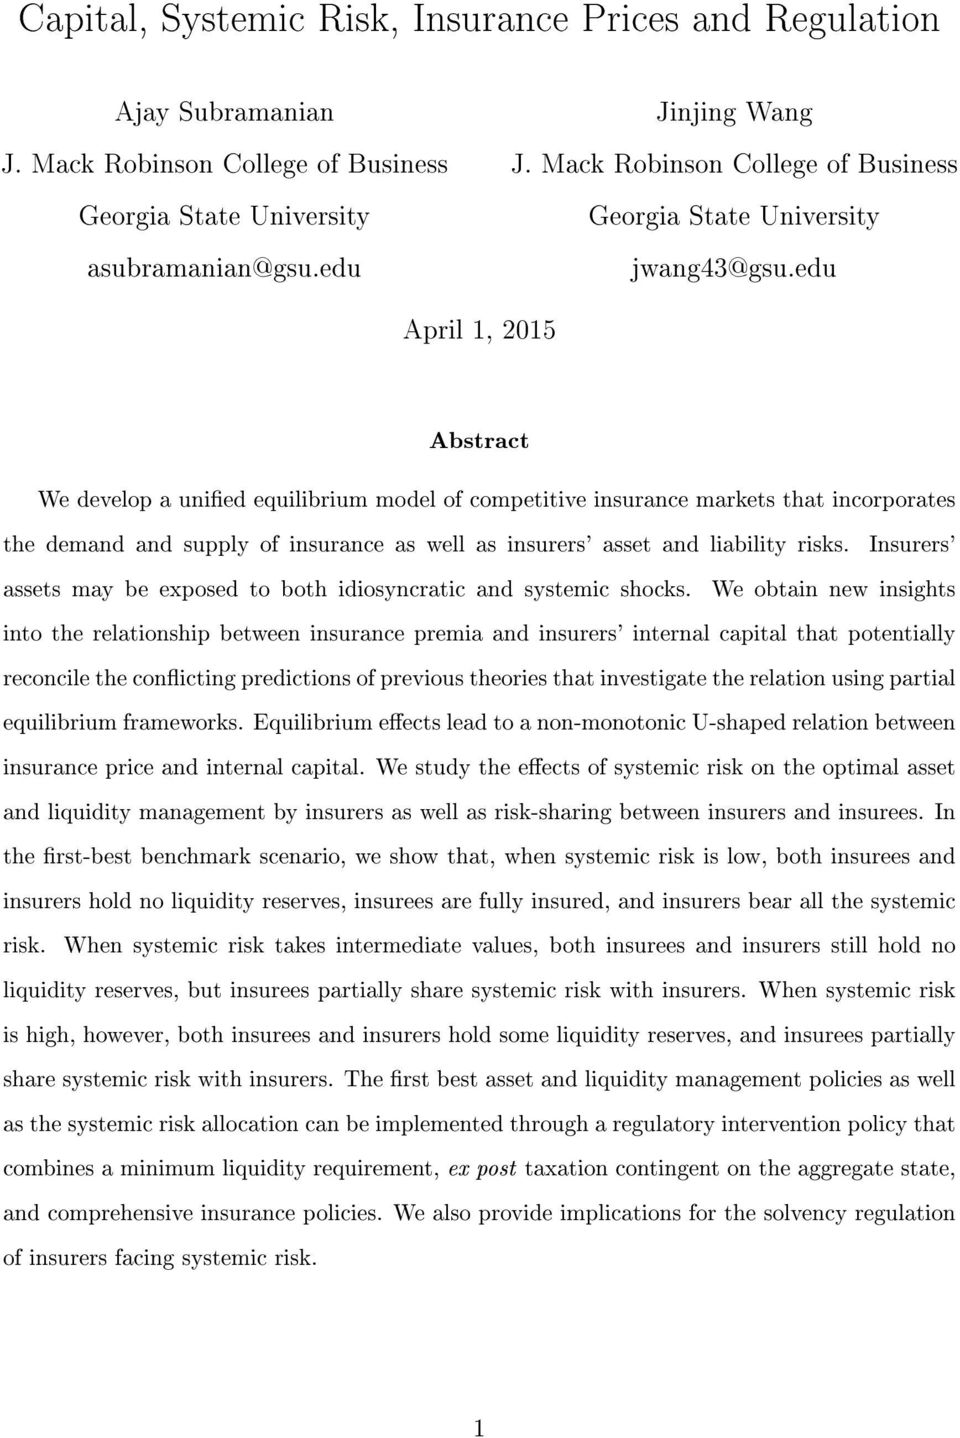 edu Aril 1, 2015 Abstract We develo a unied equilibrium model of cometitive insurance markets that incororates the demand and suly of insurance as well as insurers' asset and liability risks.